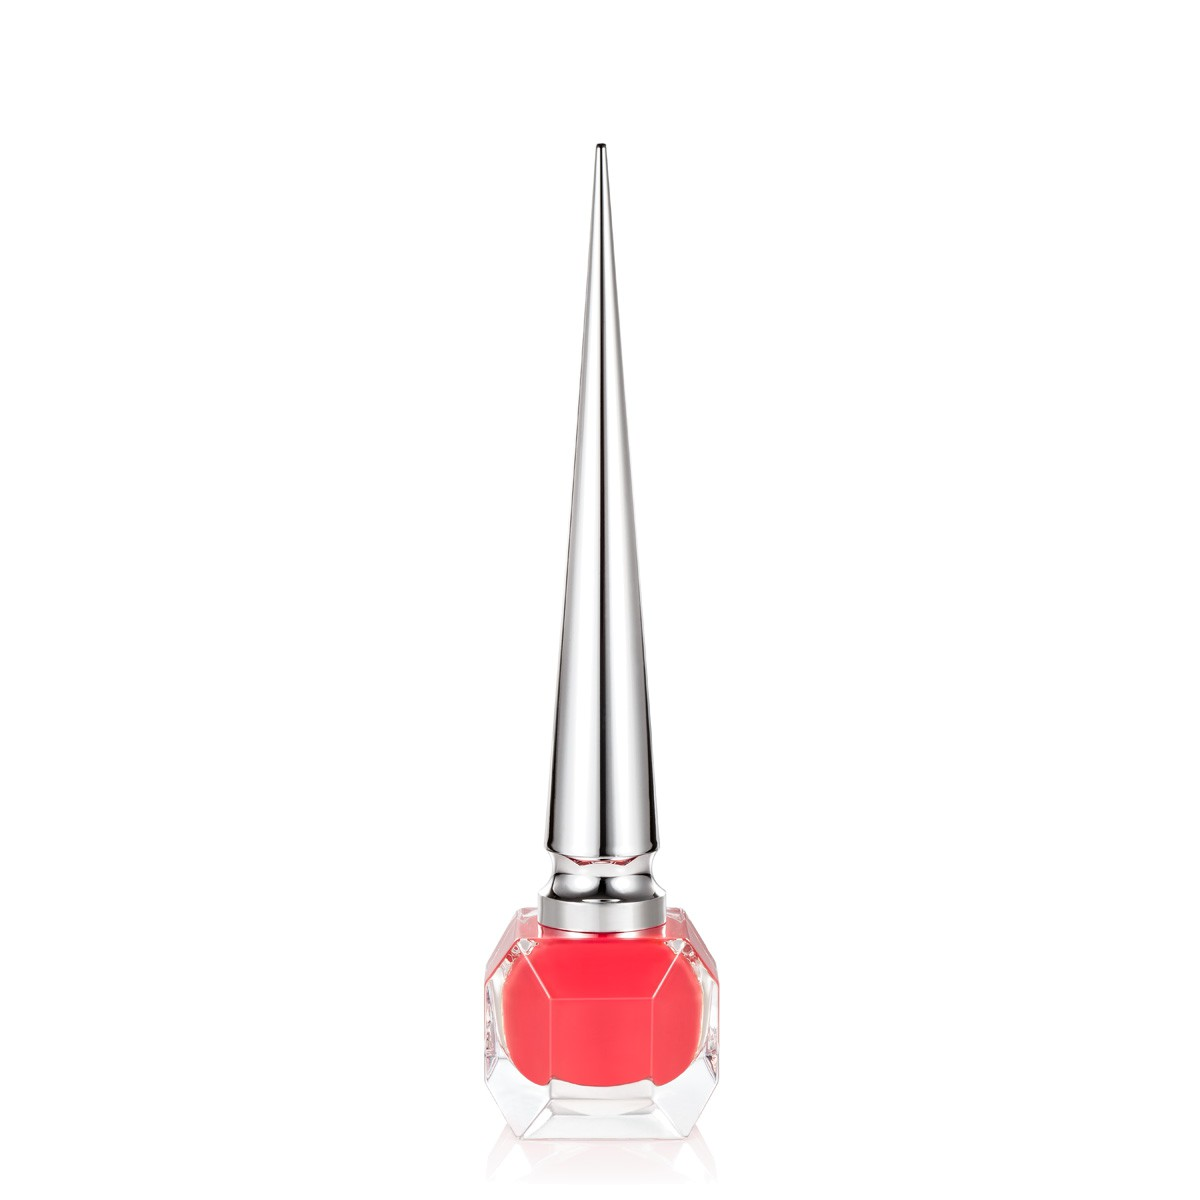 Beauty - Miss Loubi - Christian Louboutin